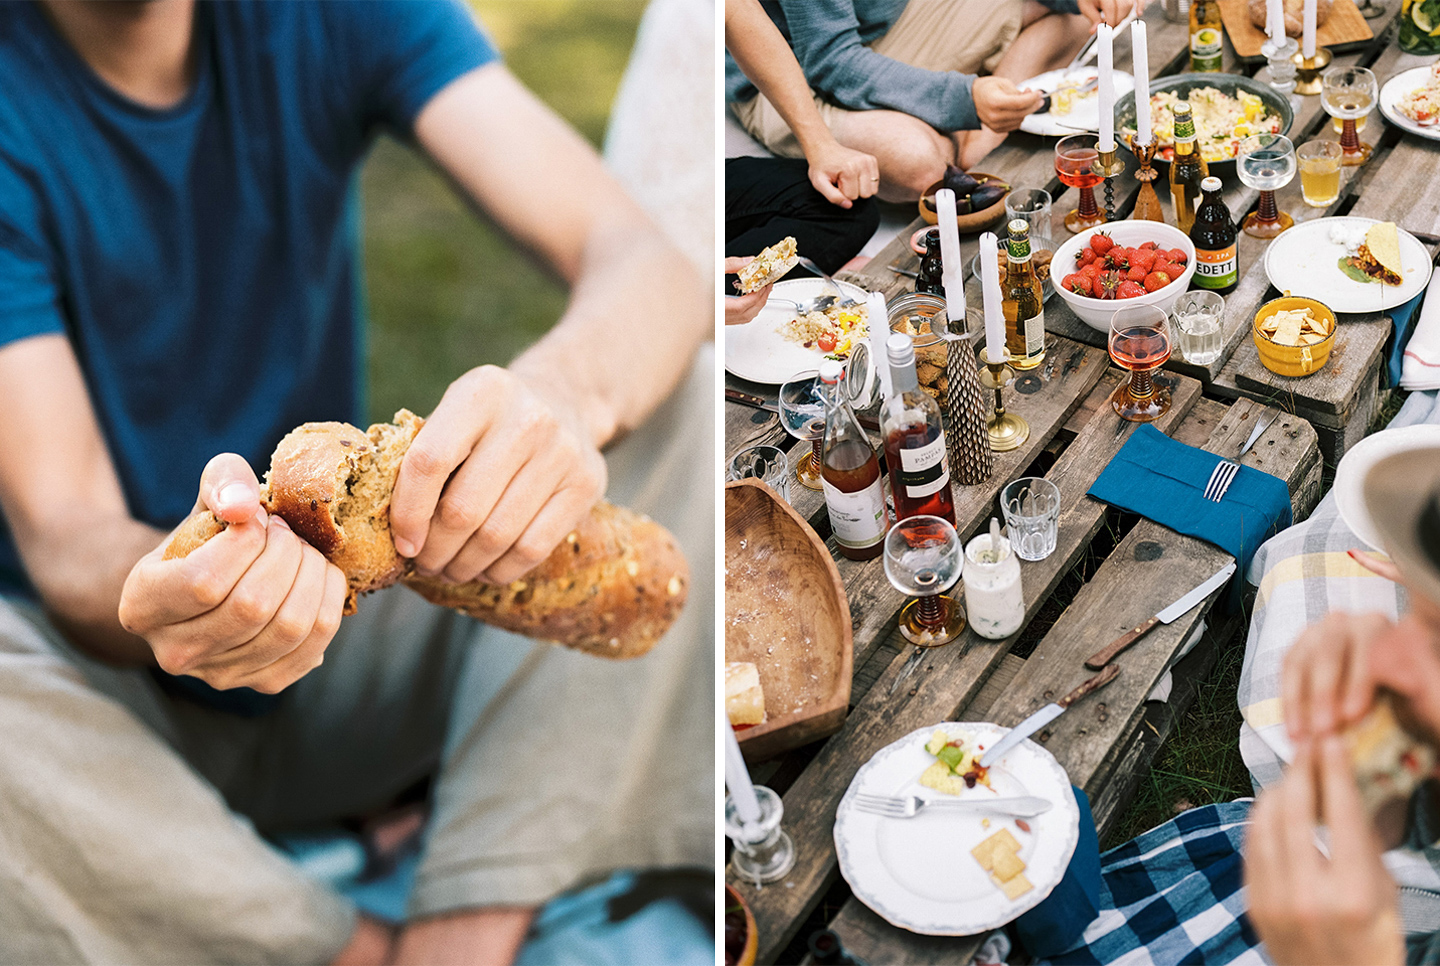 forest-picnic-with-friends-inspire-styling-hanke-arkenbout-photography-70a.jpg